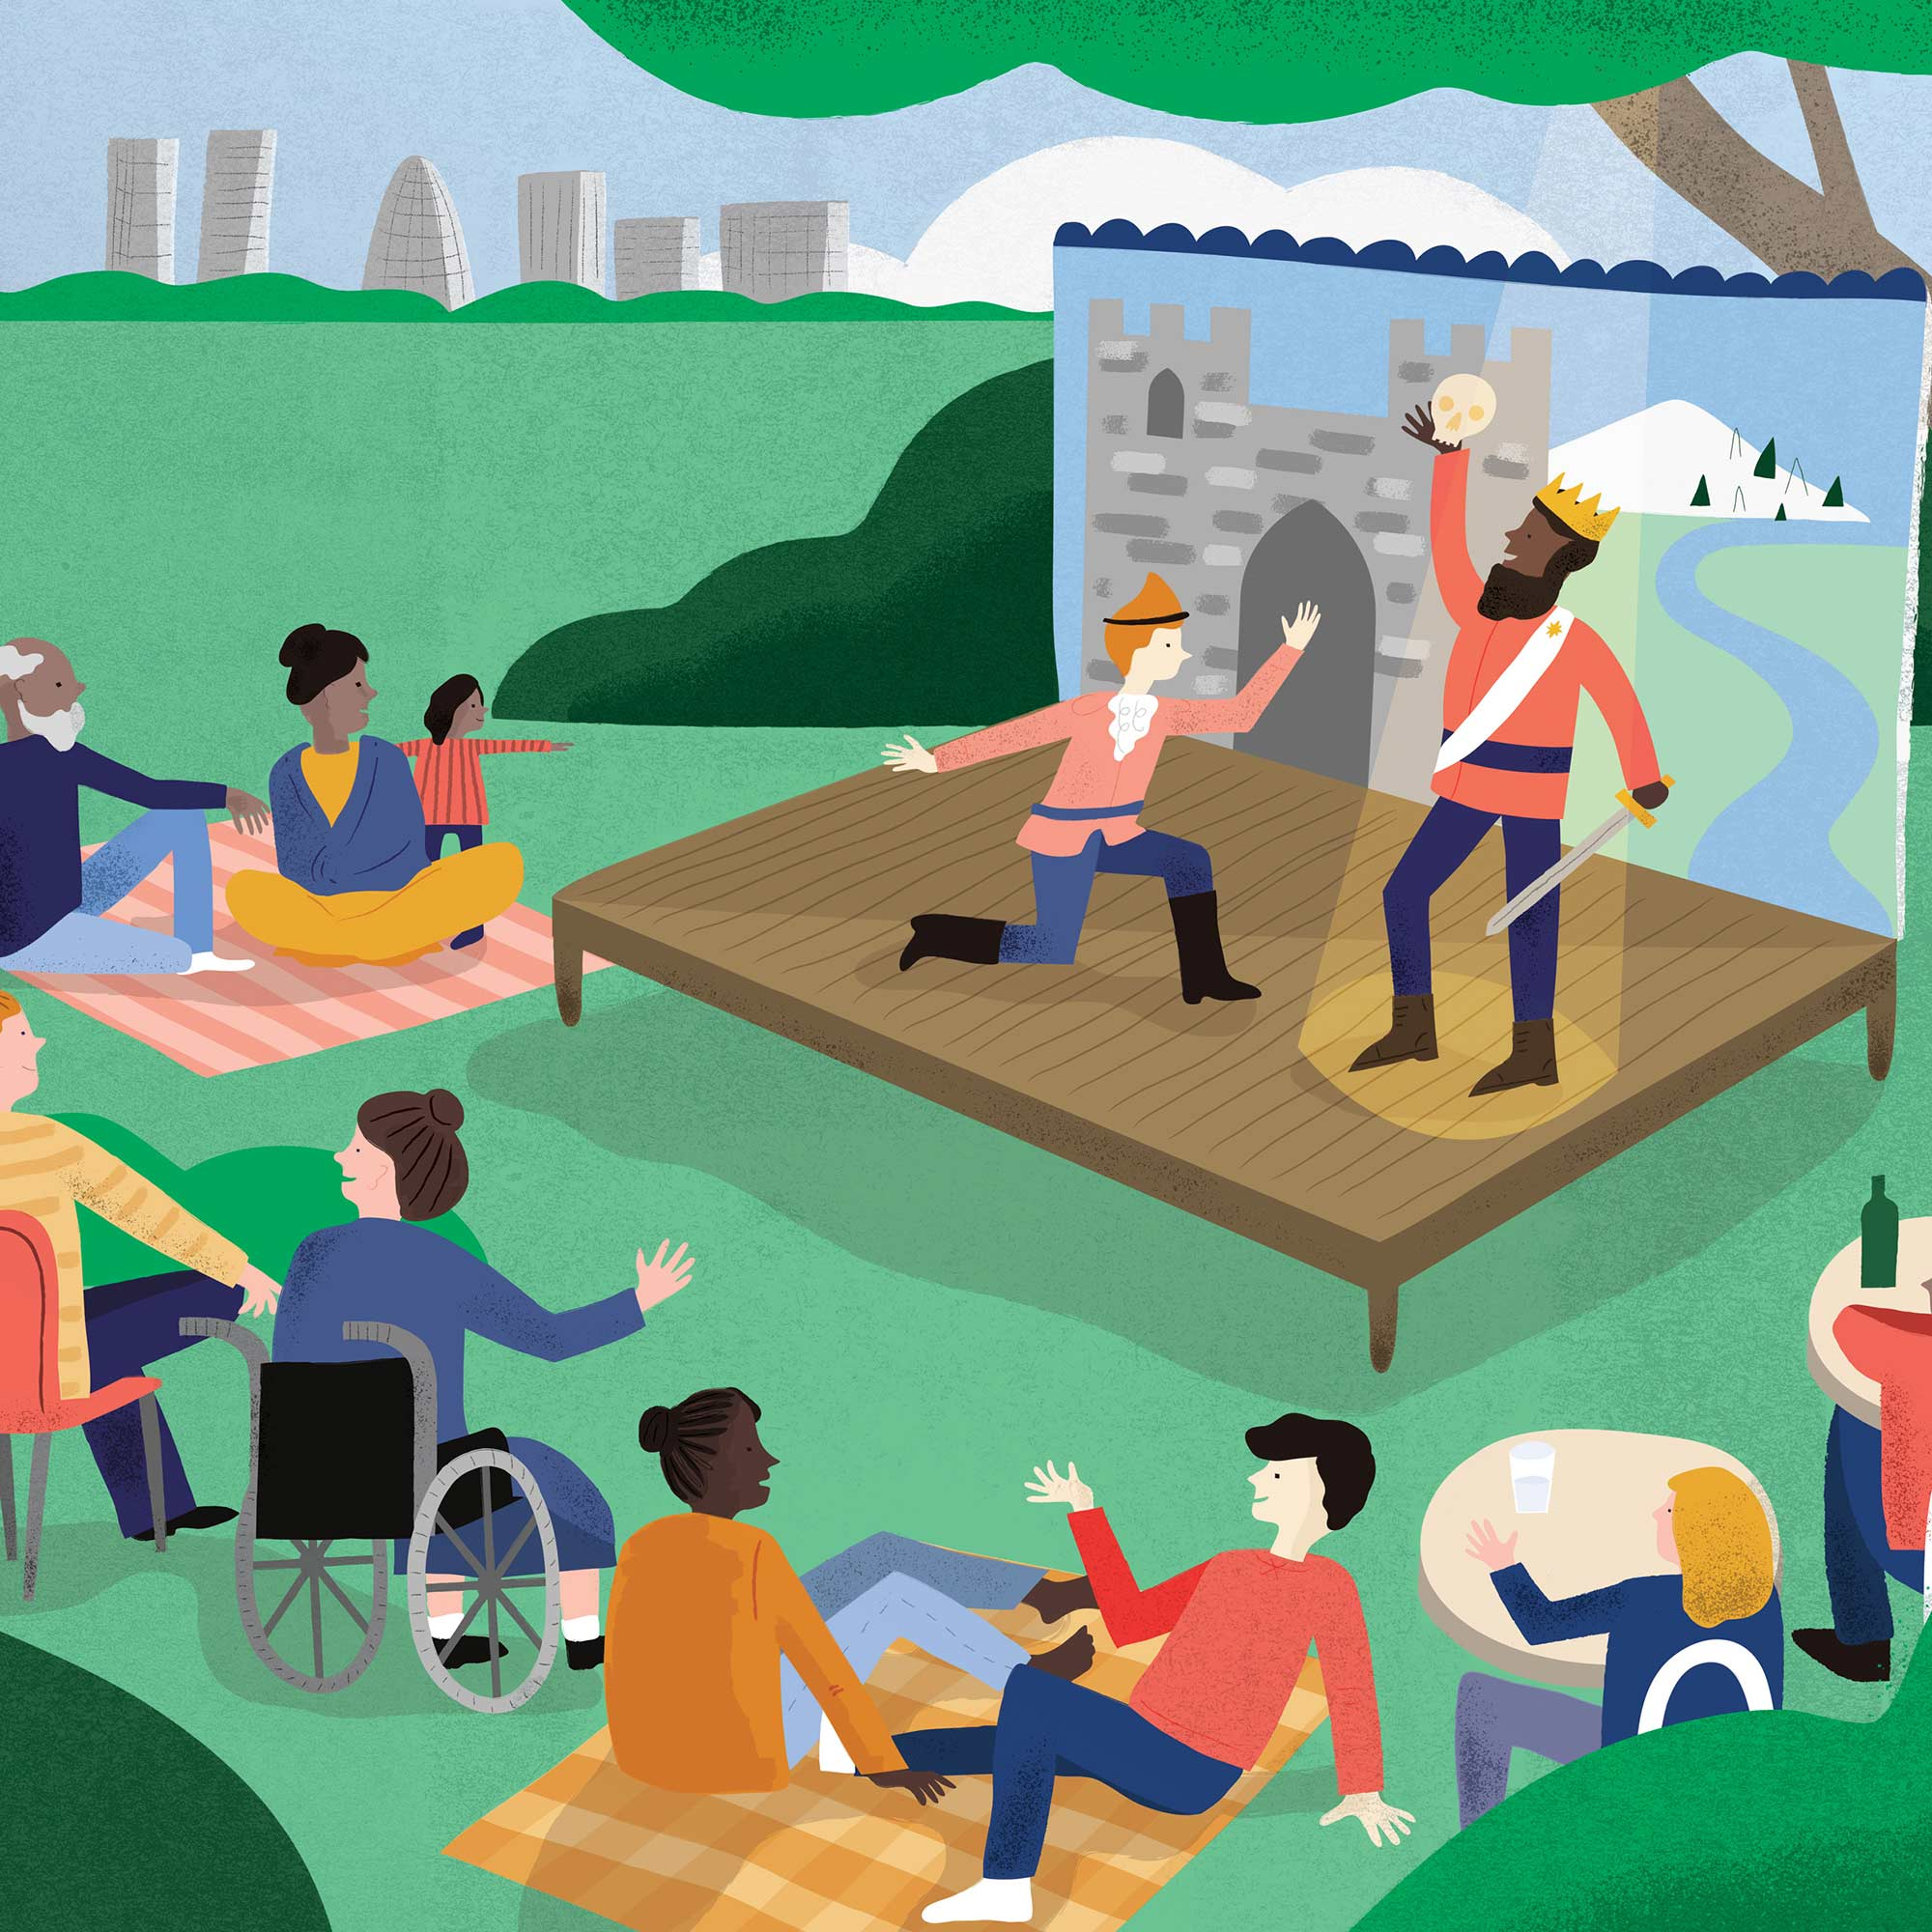 Illustration for sustainable investment fund PICNIC by Elly Jahnz